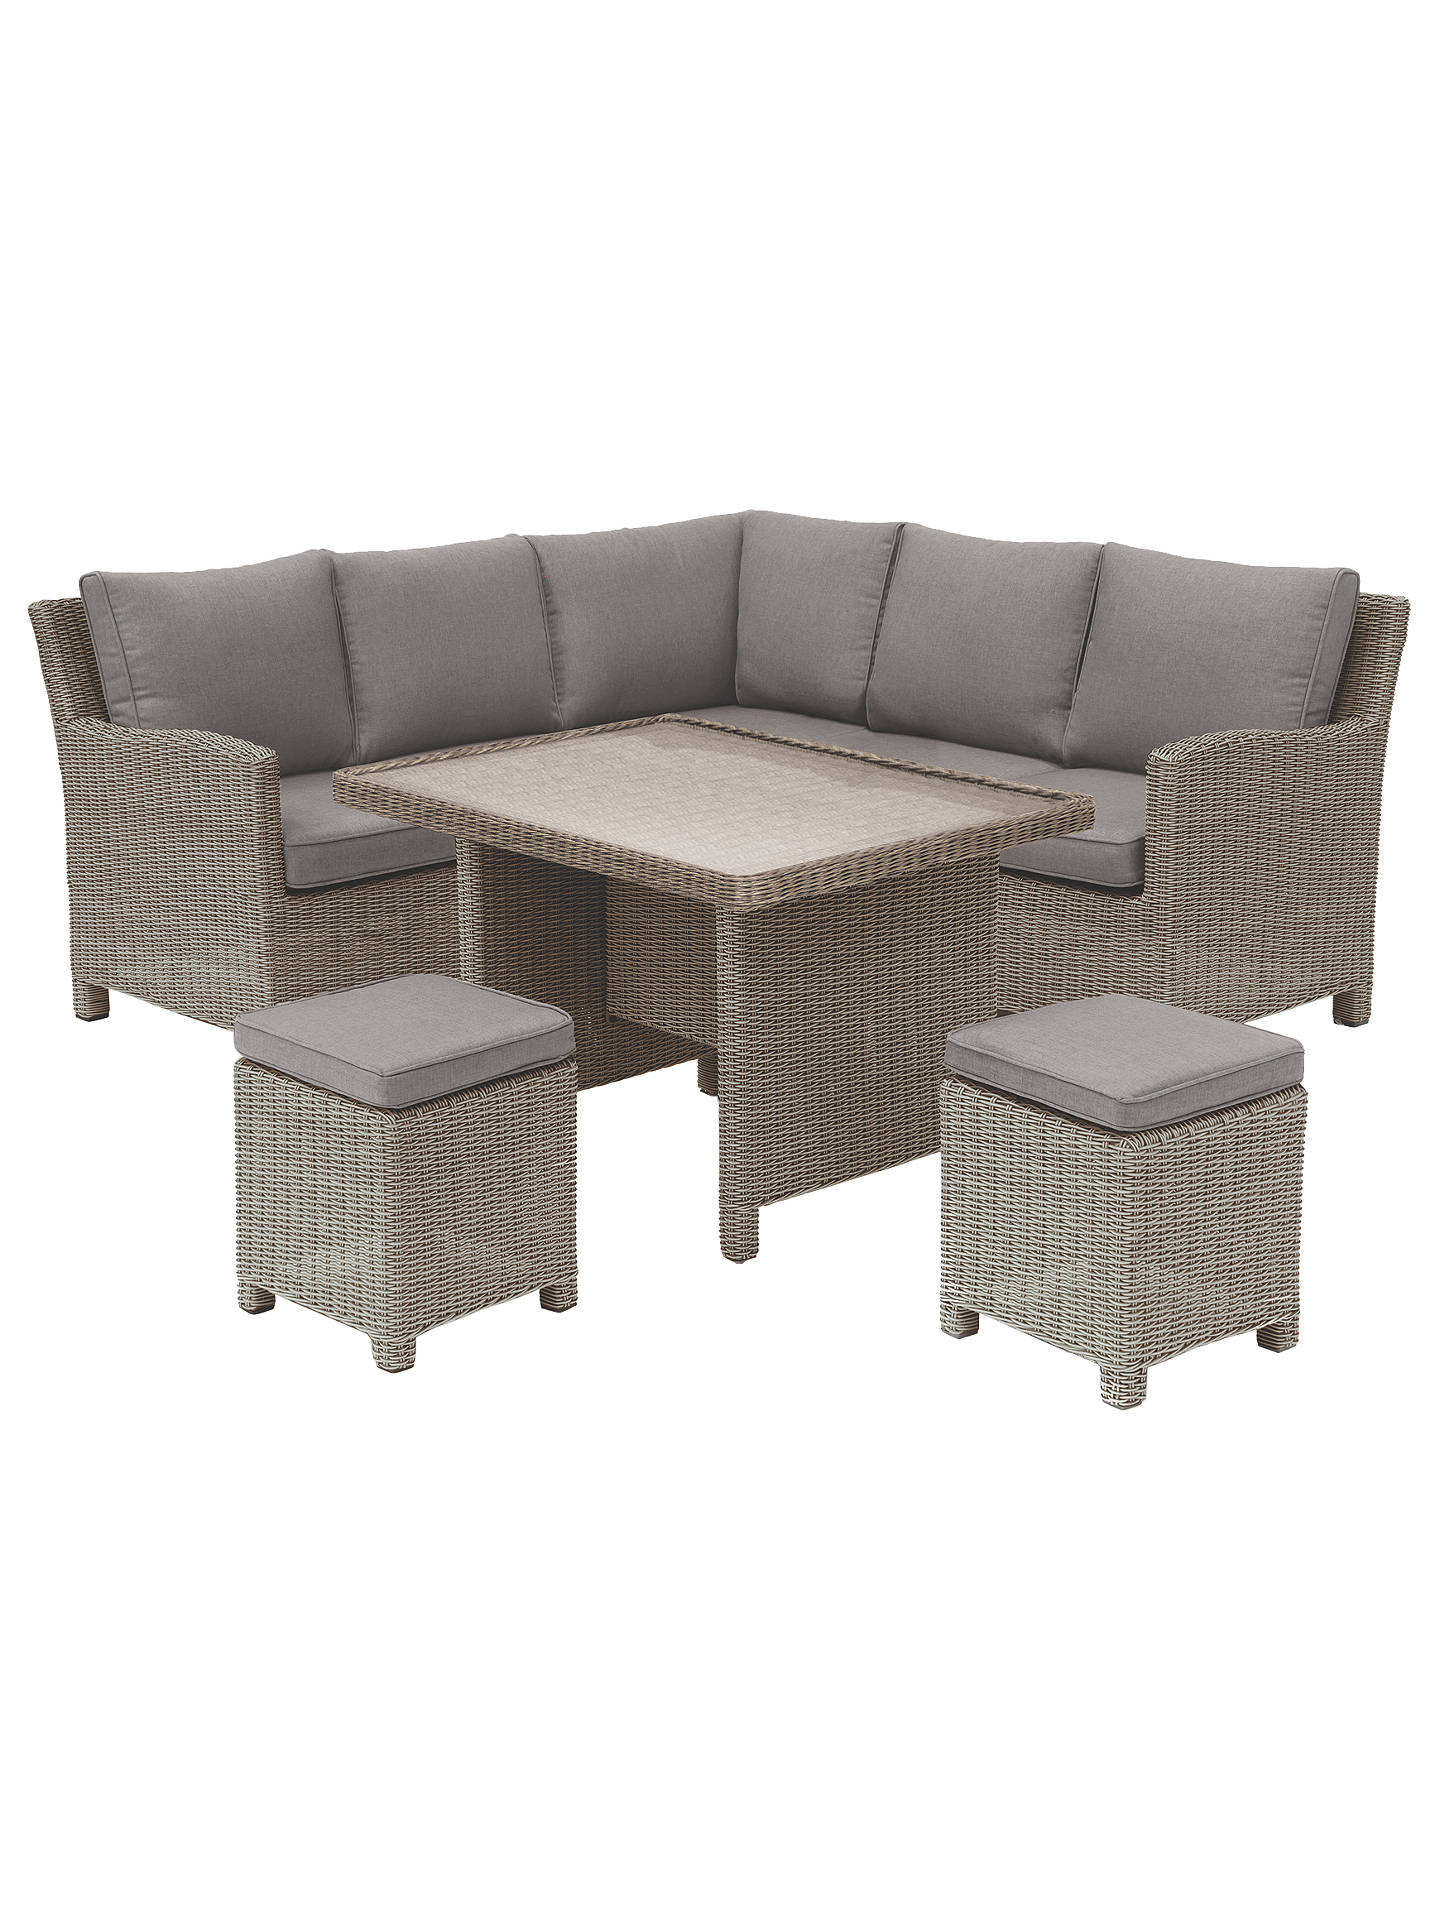 Buykettler palma garden mini lounge dining set with glass top table rattan online at